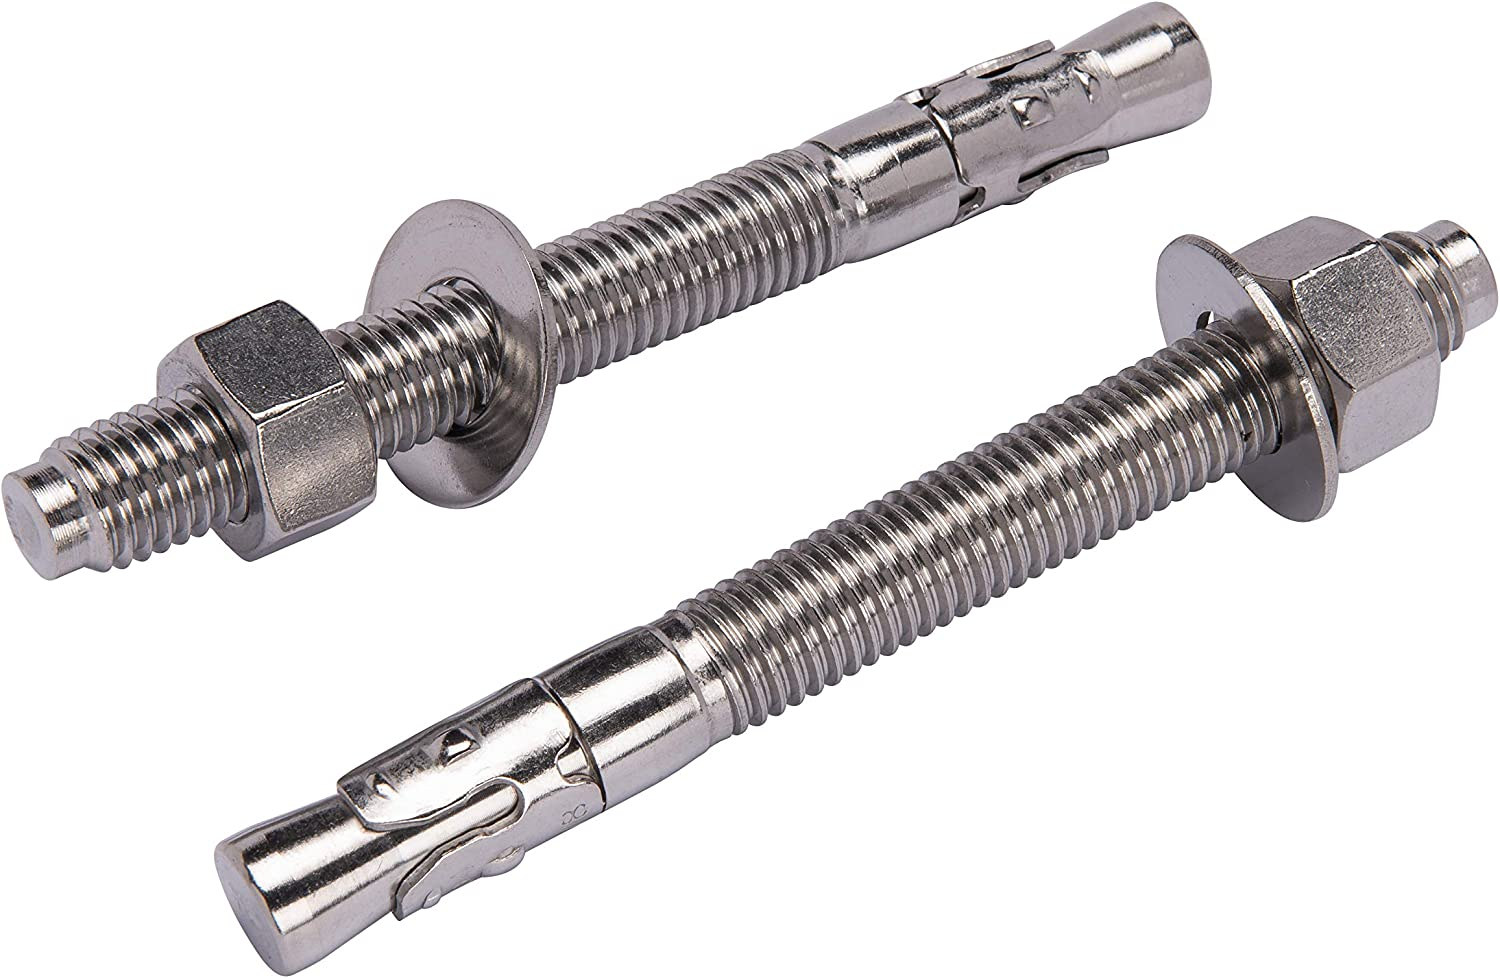 5//16 X 2-3//4 Stainless Wedge Anchor 10pc 18-8 Stainless Steel